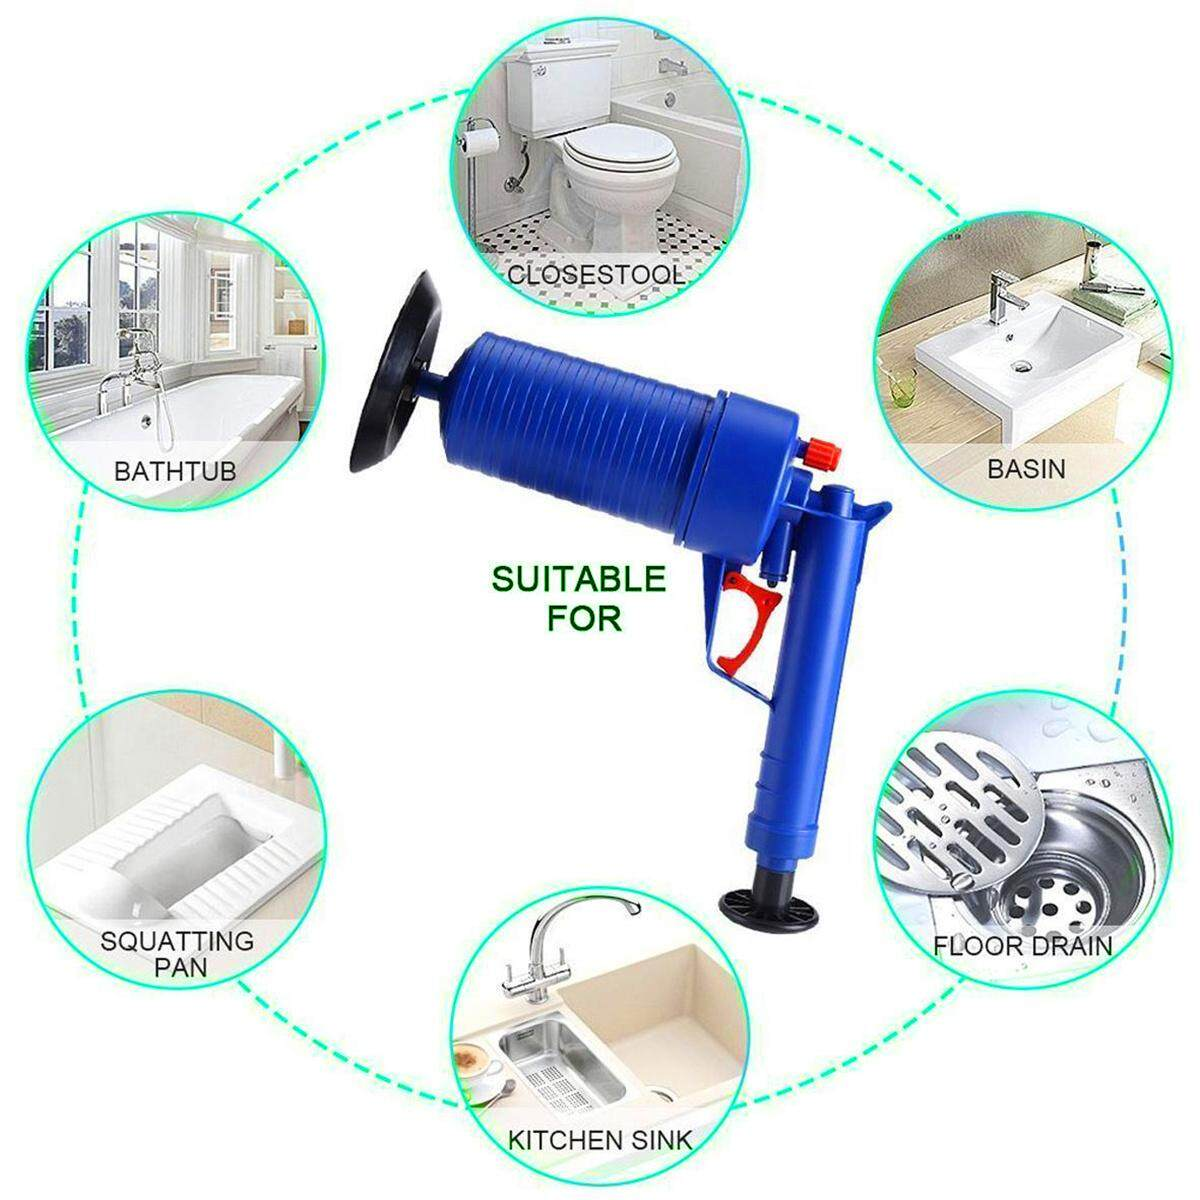 Rubber Toilet Dredge Plug High Pressure Air Pump Blockage Remover Sewer Sinks Blocked Cleaning Plunger Tool w/ 4x Suckers